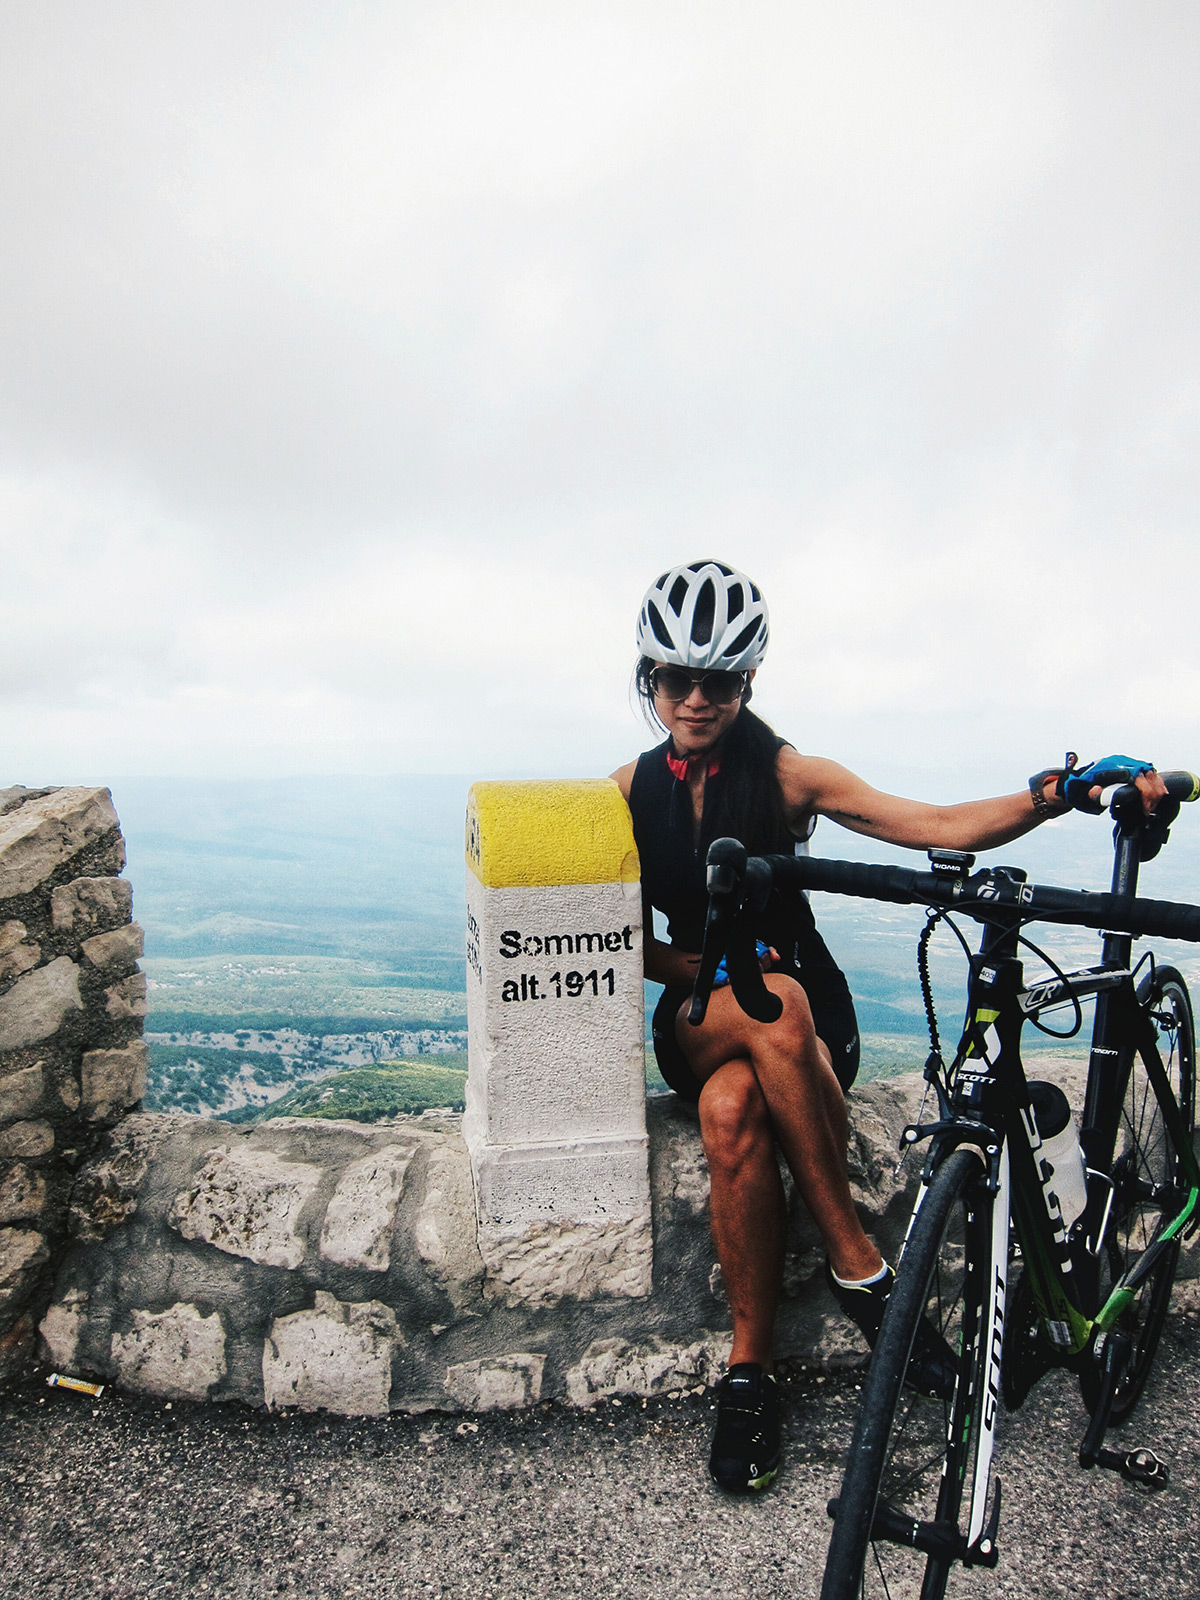 Mount Ventoux, June 2014.